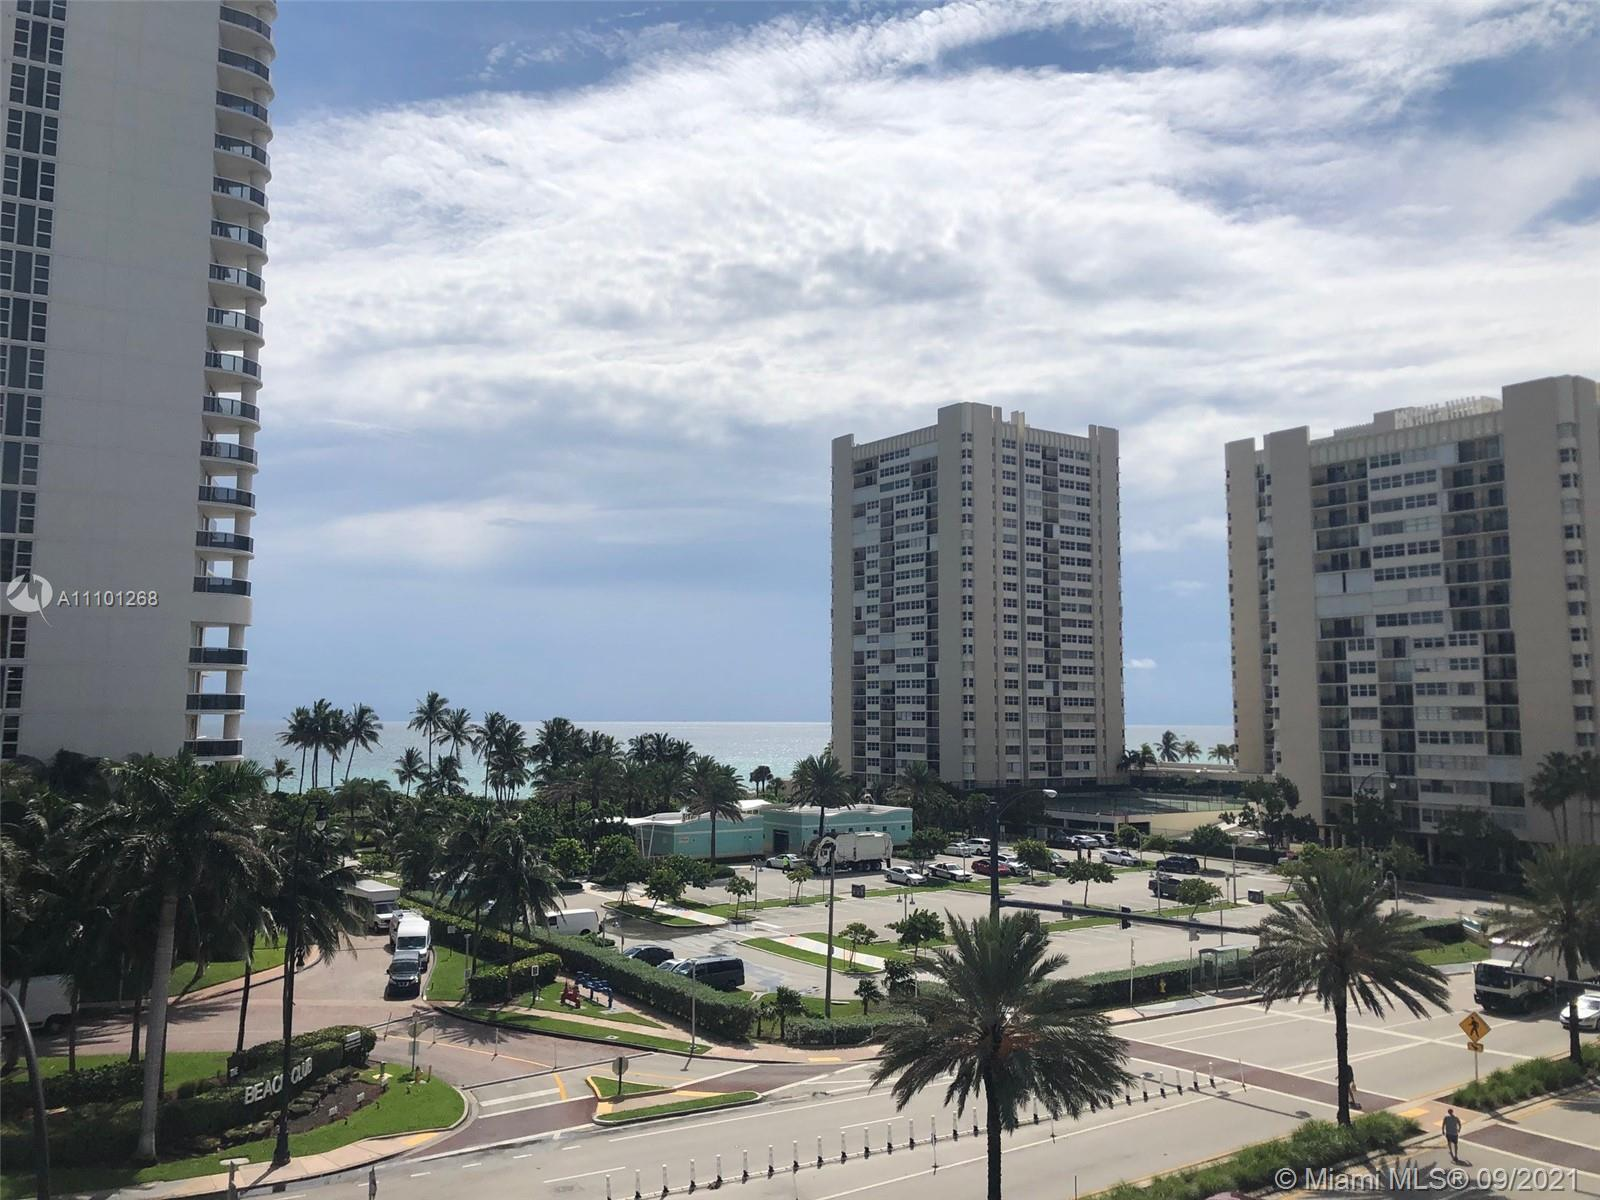 Famous Hallandale Beach, FL on A1A, directly across the street from the ocean, right on the Intracoa